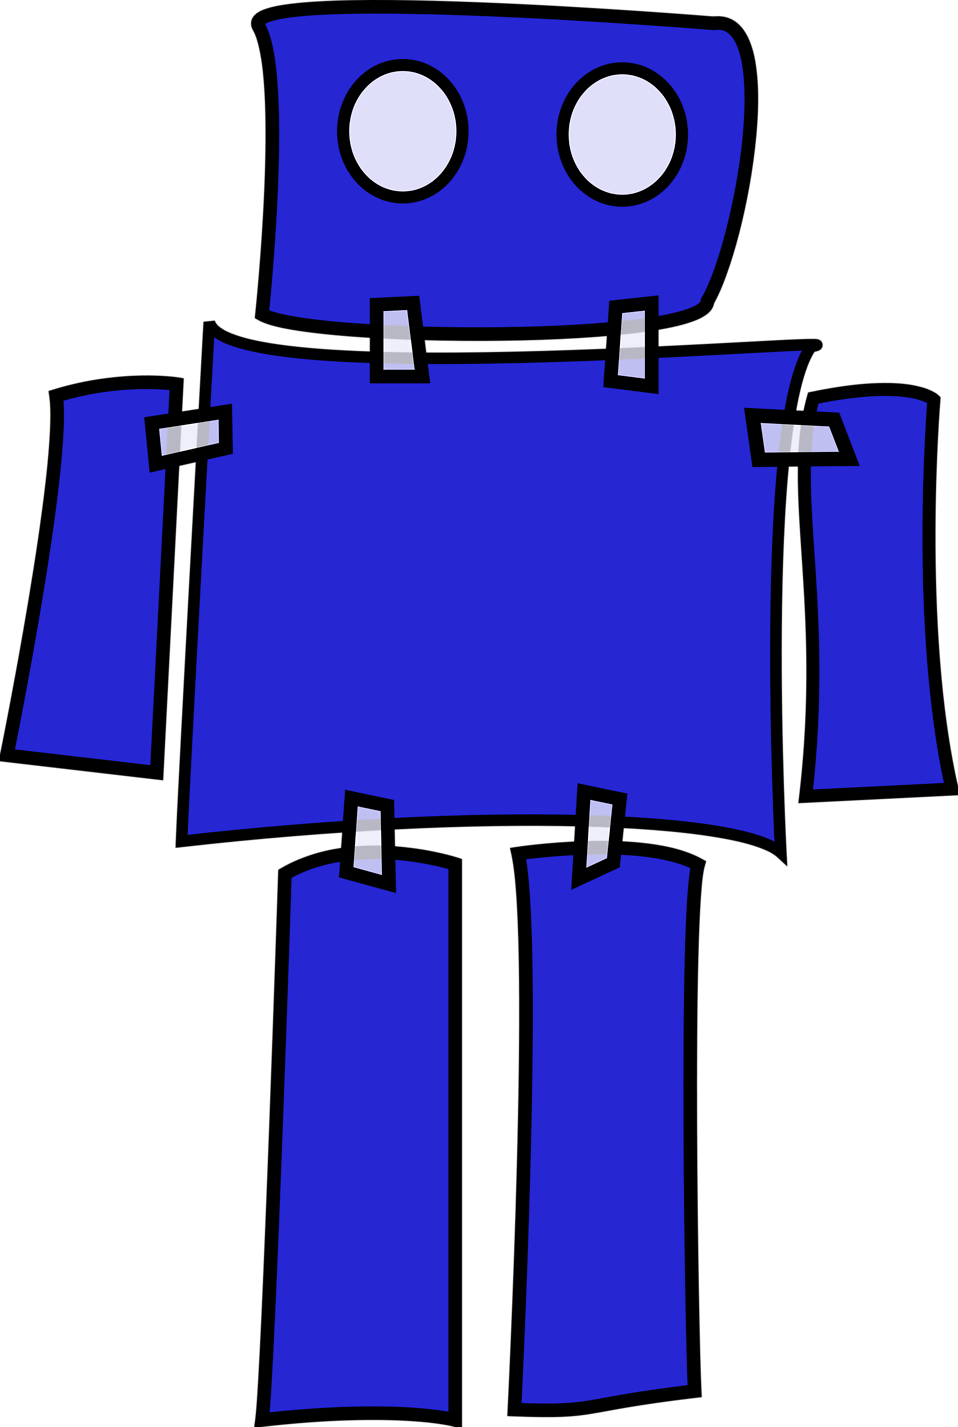 animated robot clipart - photo #25